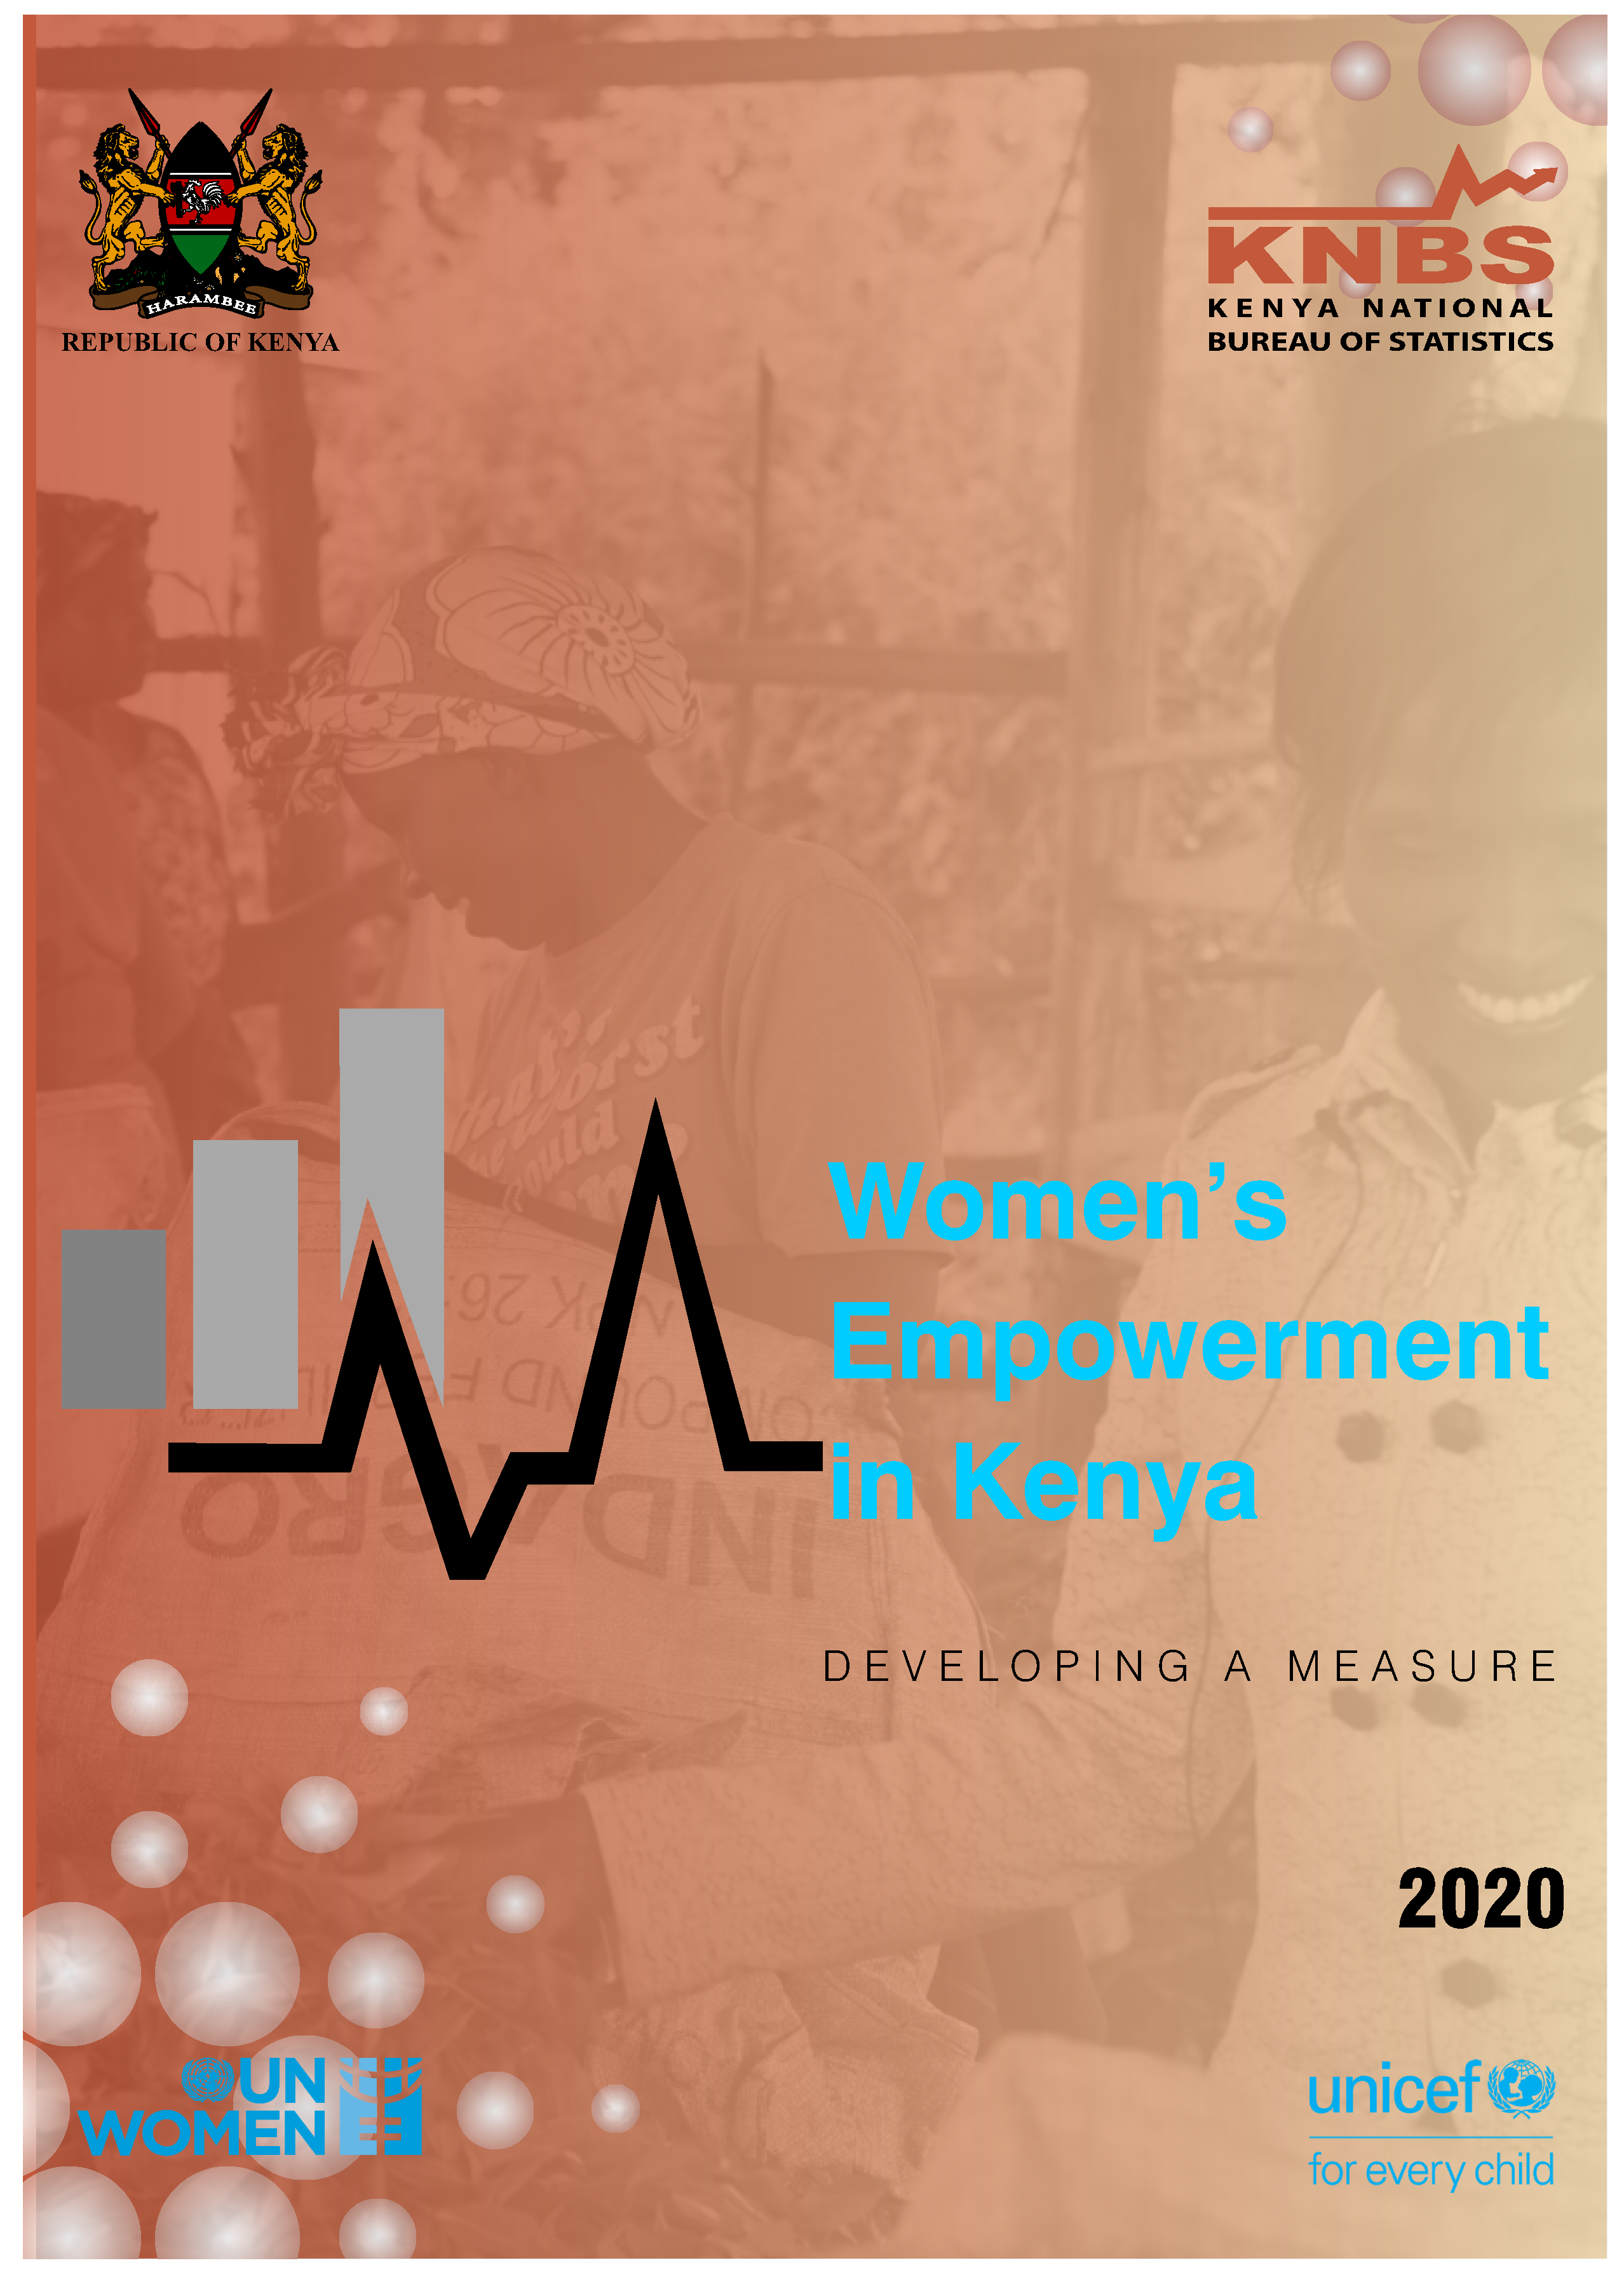 The Women's Empowerment Index